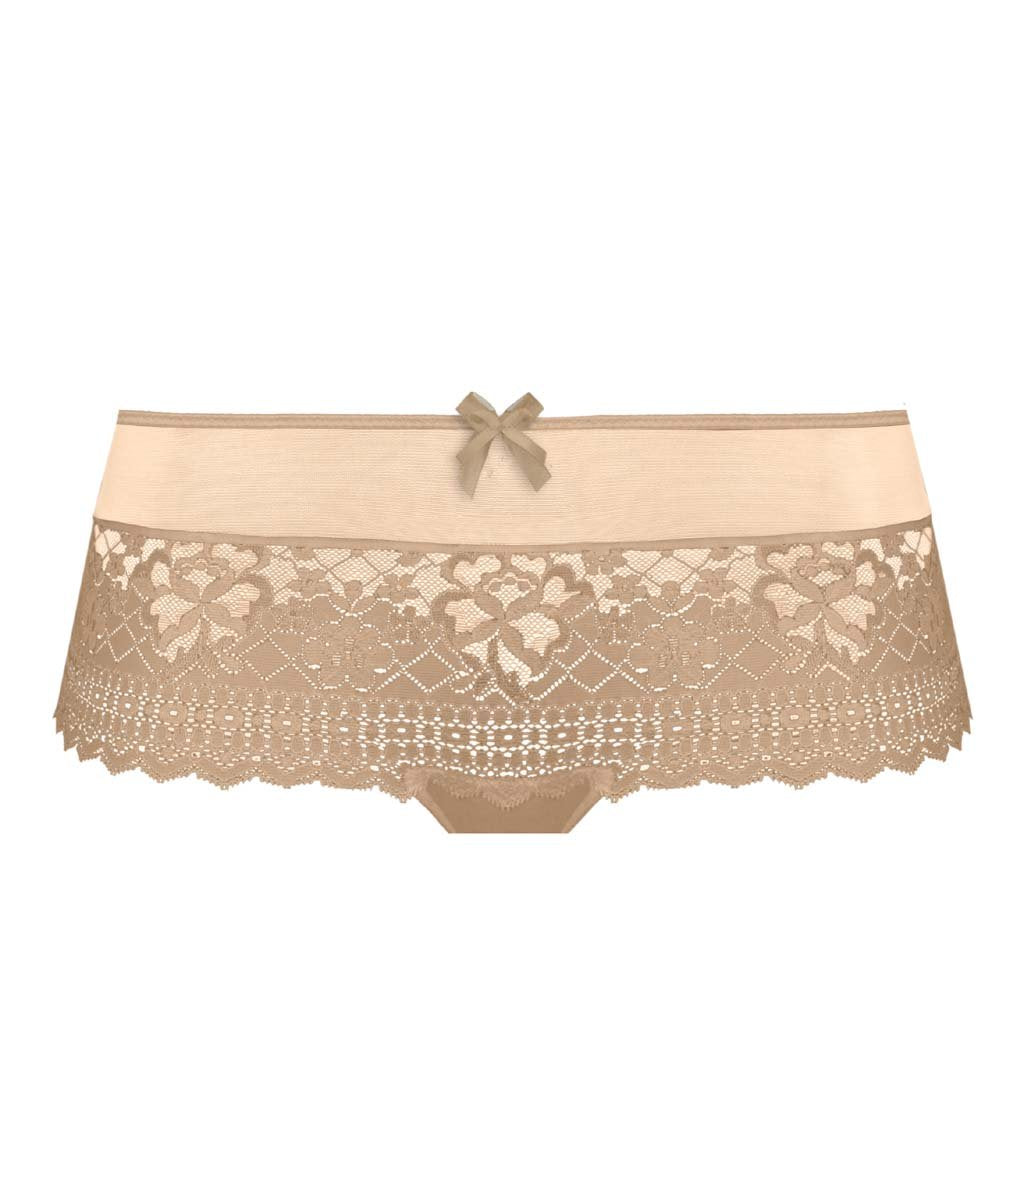 Empreinte 'Melody' (Caramel) Shorts (Hotpants) - Sandra Dee - Product Shot - Front